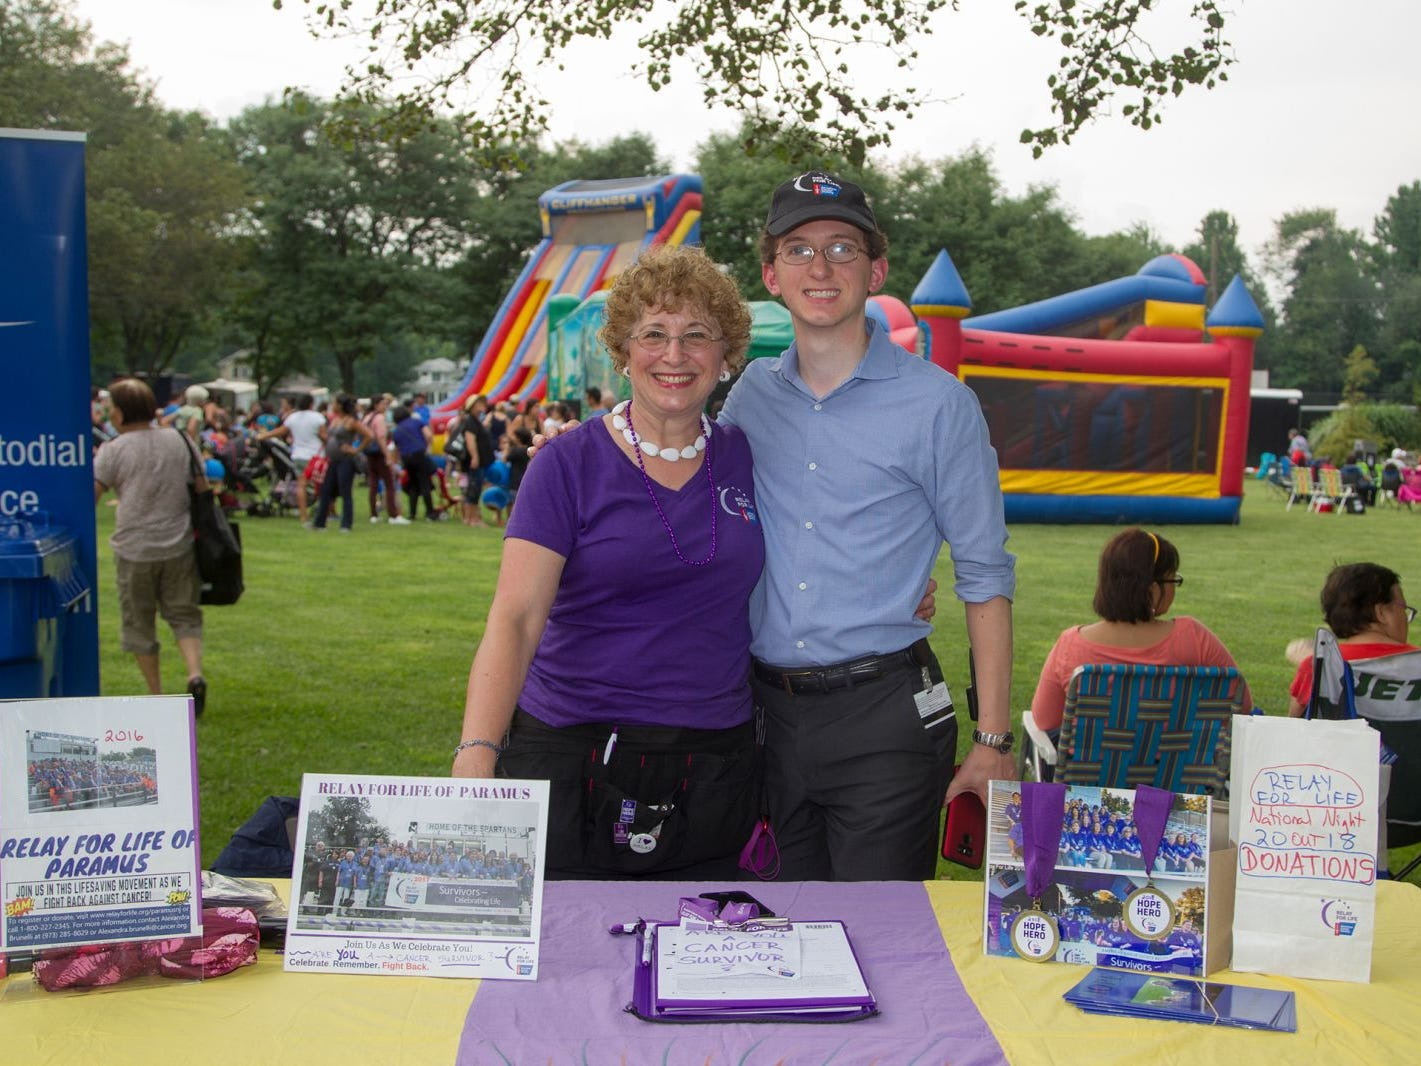 Relay for Life - Danielle Manis and David Manis. Paramus National Night Out 2018 behind Paramus Library. 08/07/2018